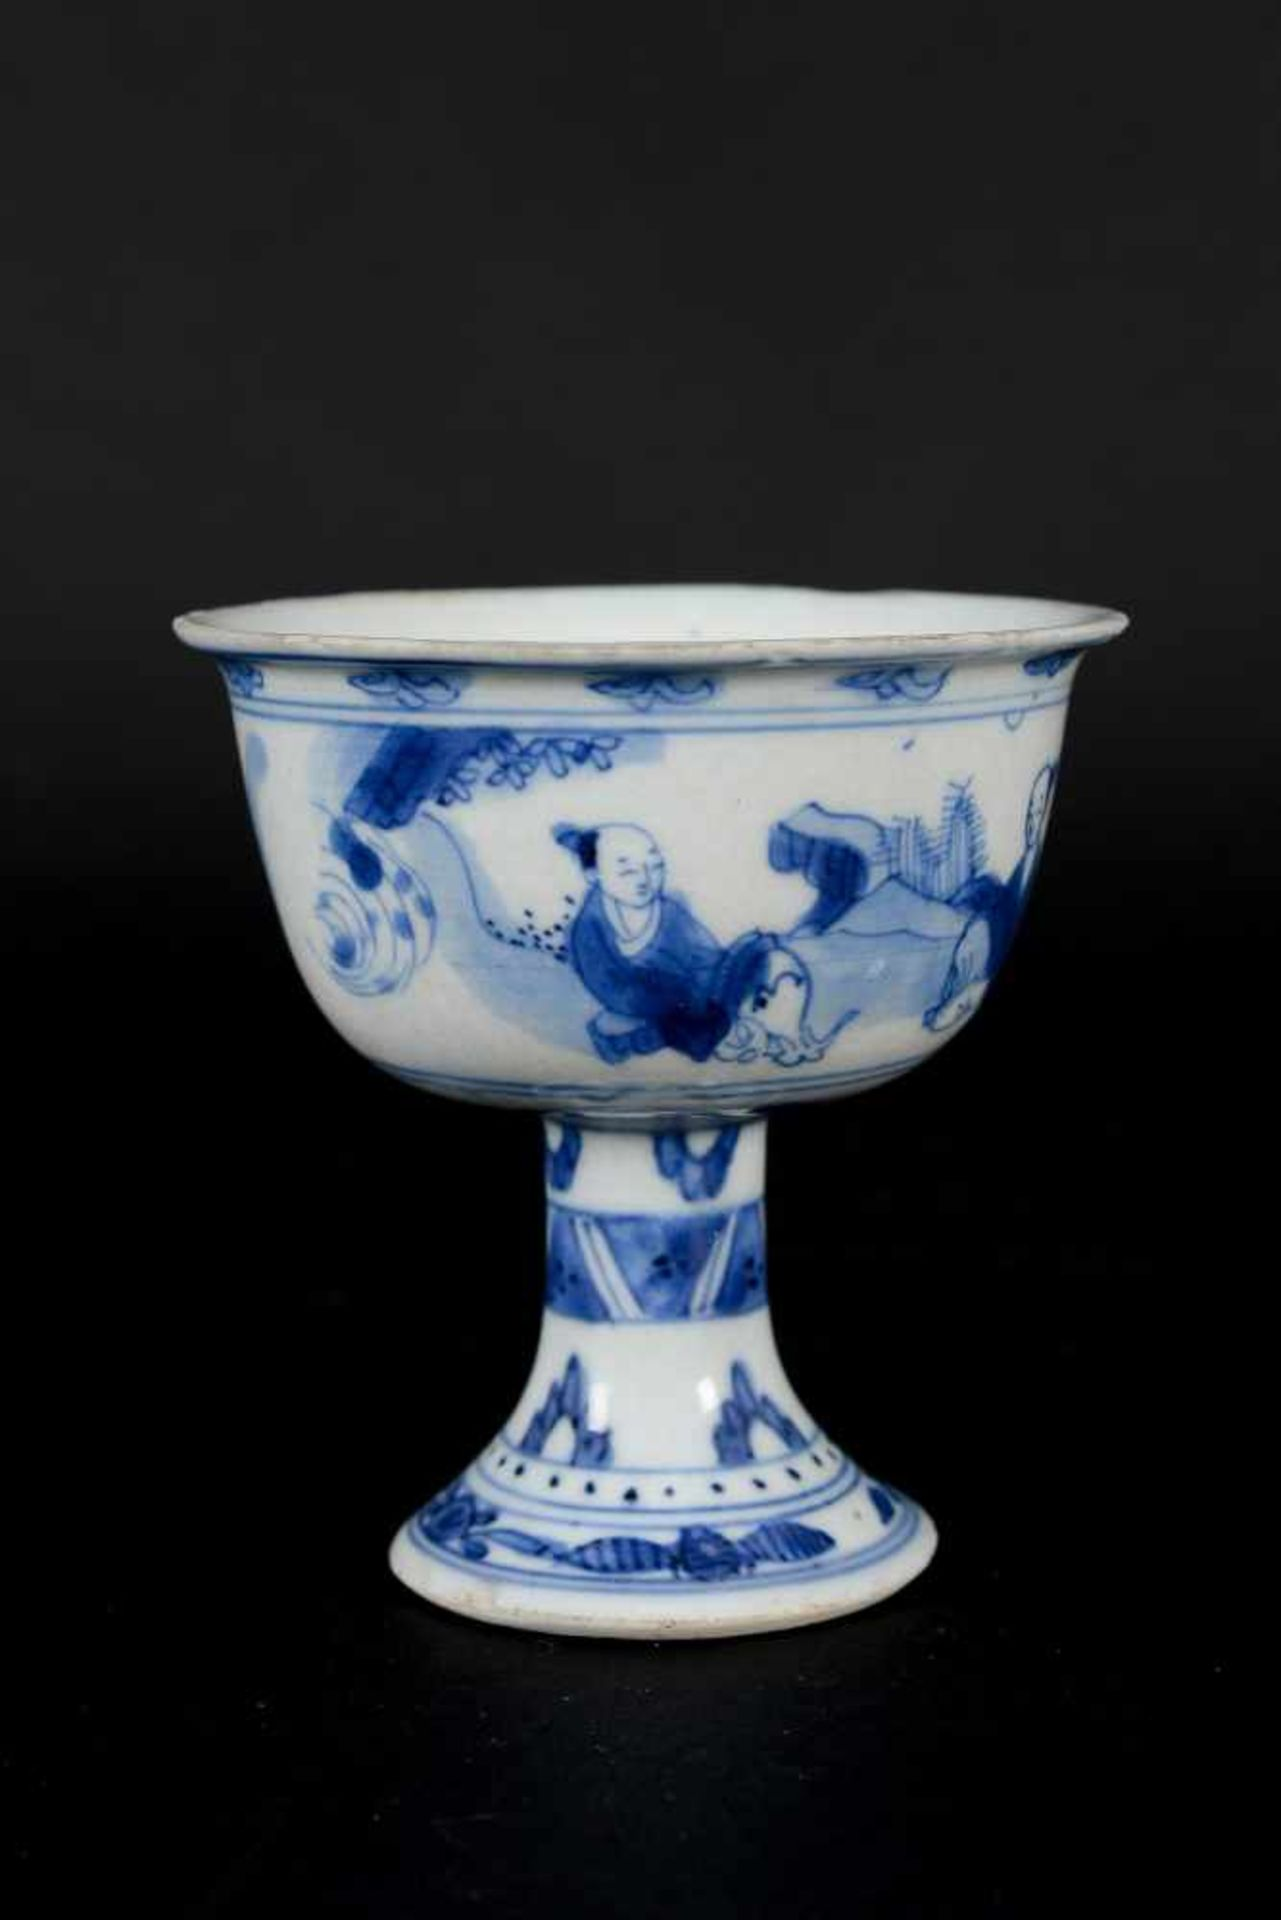 A blue and white porcelain stem cup, decorated with figures in landscape. Unmarked. China, - Bild 3 aus 6